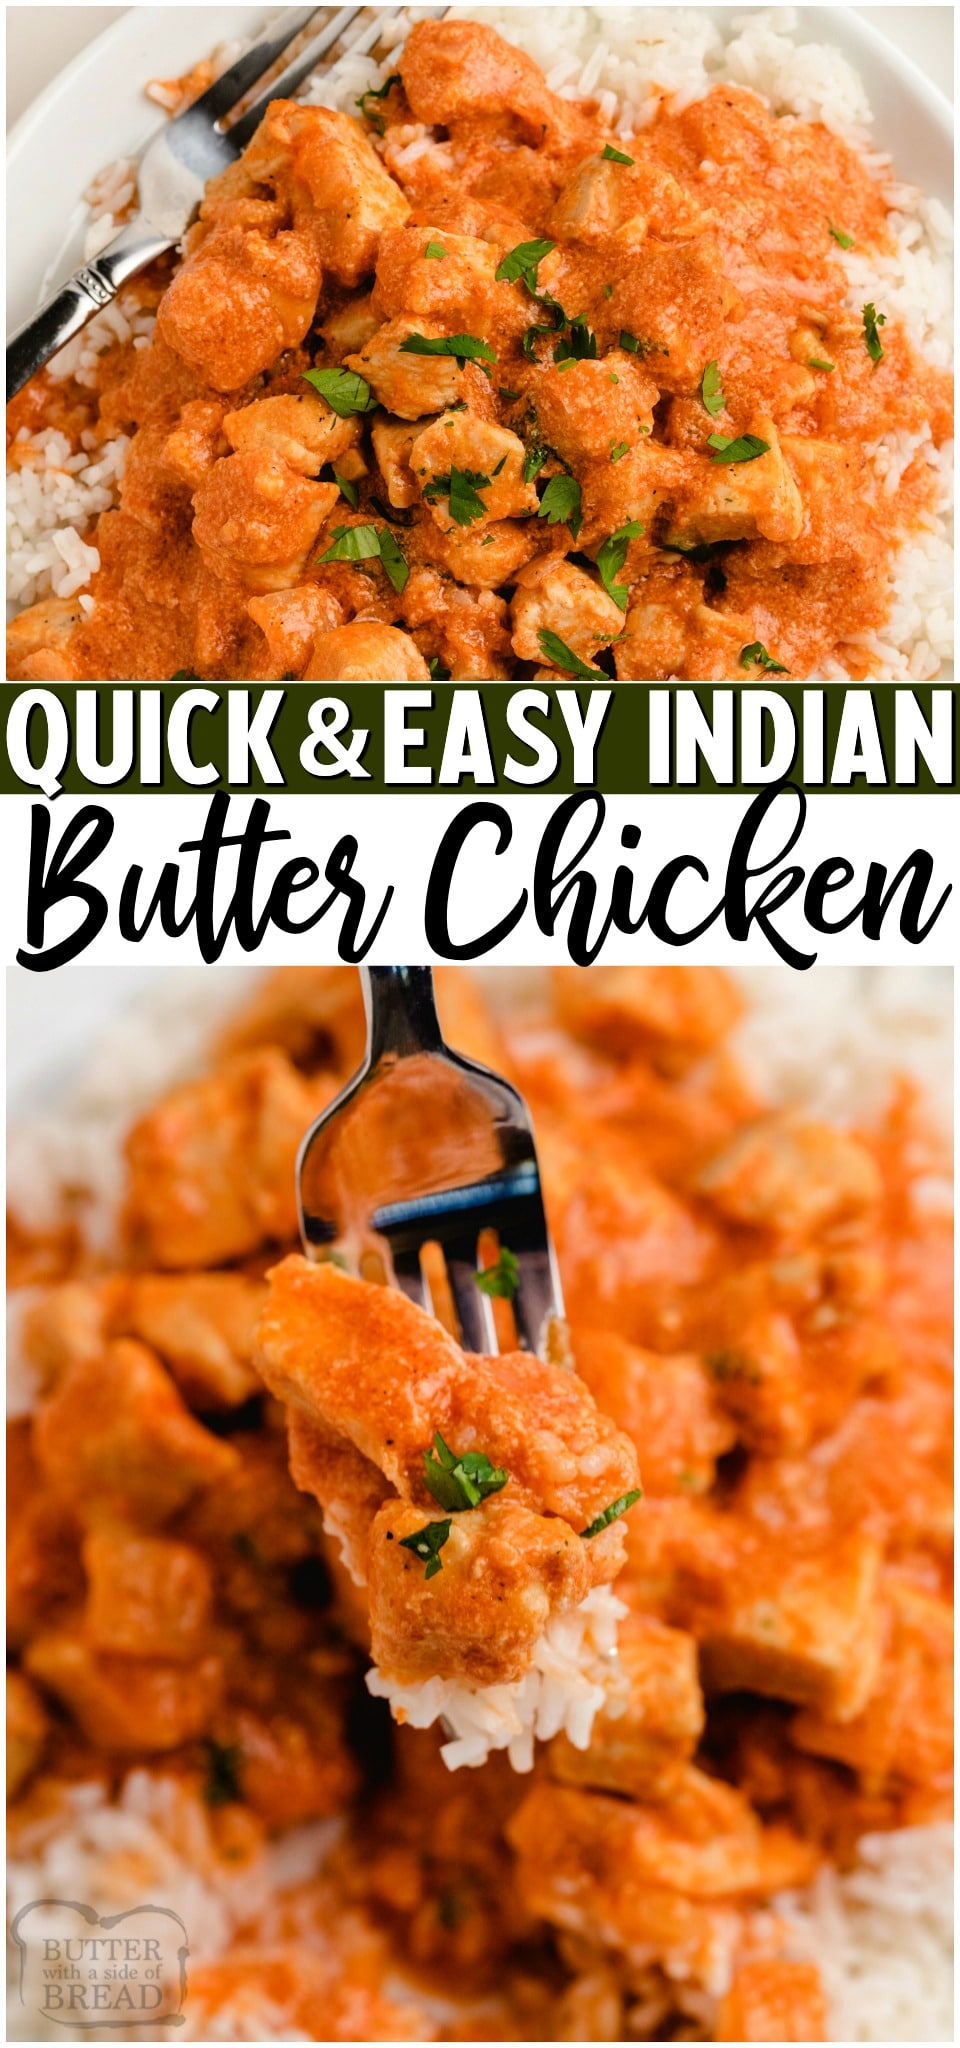 Easy Indian Butter chicken recipe made with a simple blend of spices, onion, garlic, tender chicken, tomato sauce & butter, of course! Serve this flavorful Butter chicken over rice with a side of naan! #chicken #maindish #dinner #Indian #Butter #easyrecipe from BUTTER WITH A SIDE OF BREAD